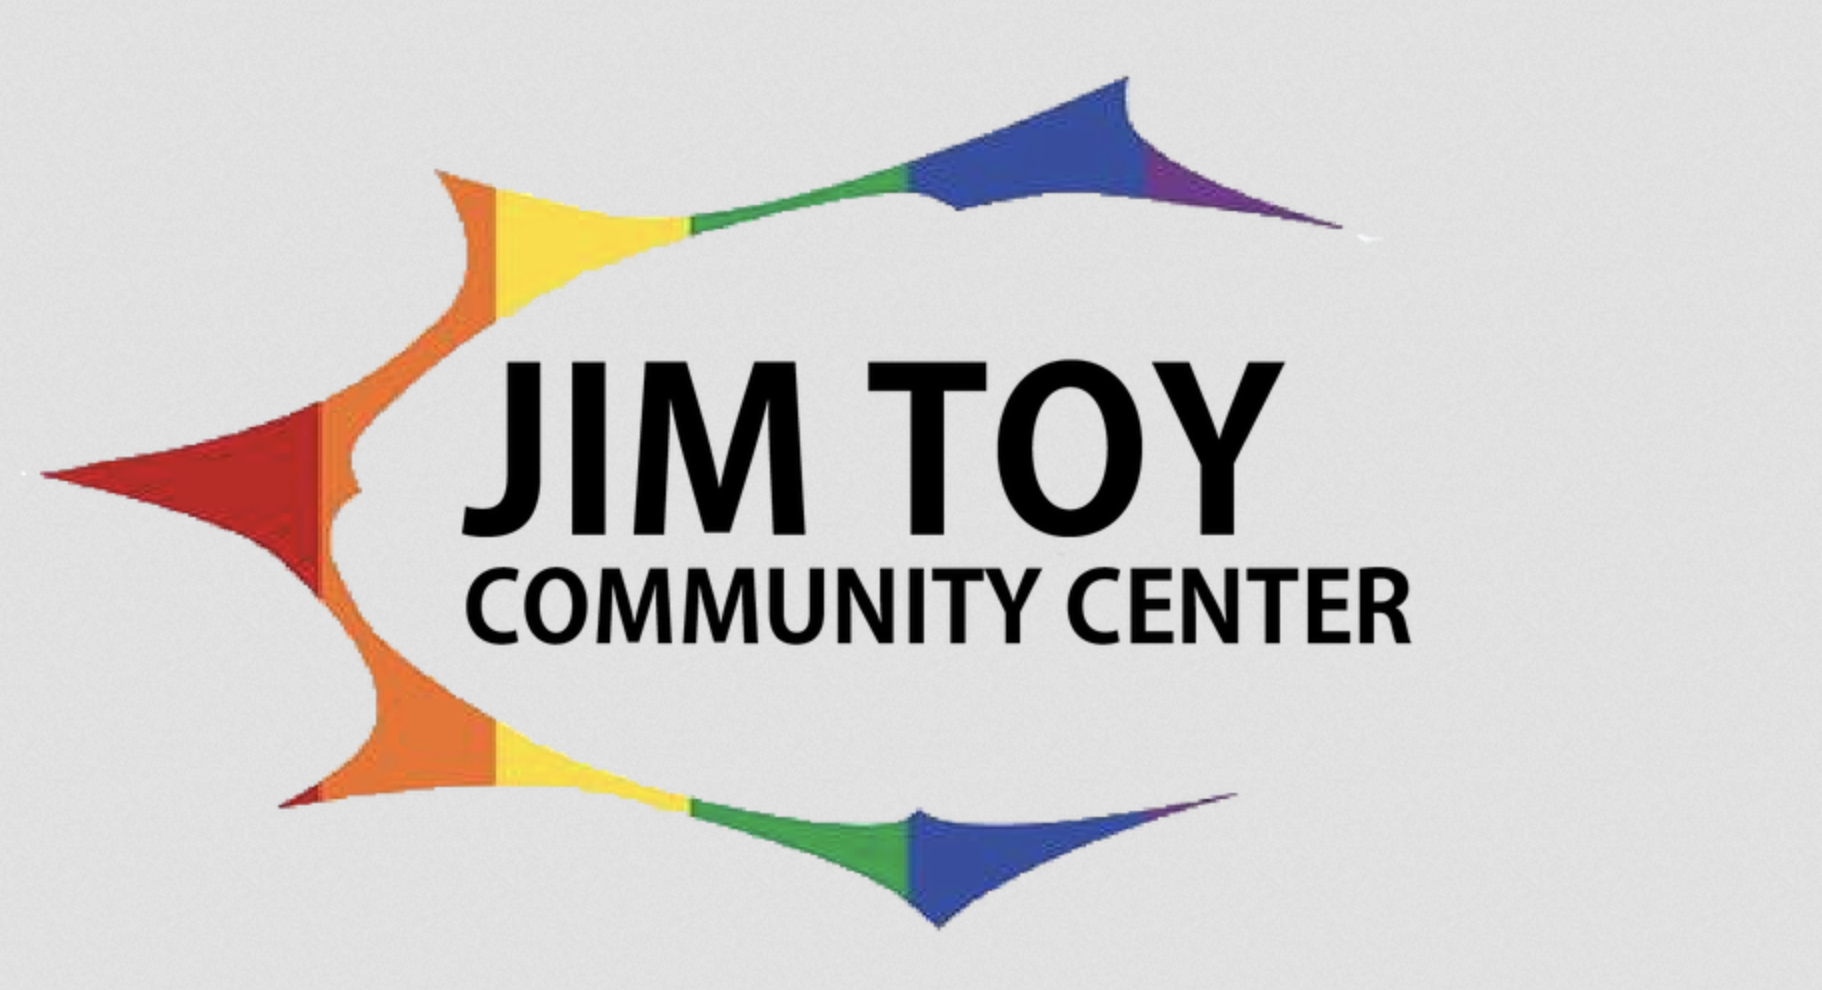 Jim Toy Community Center